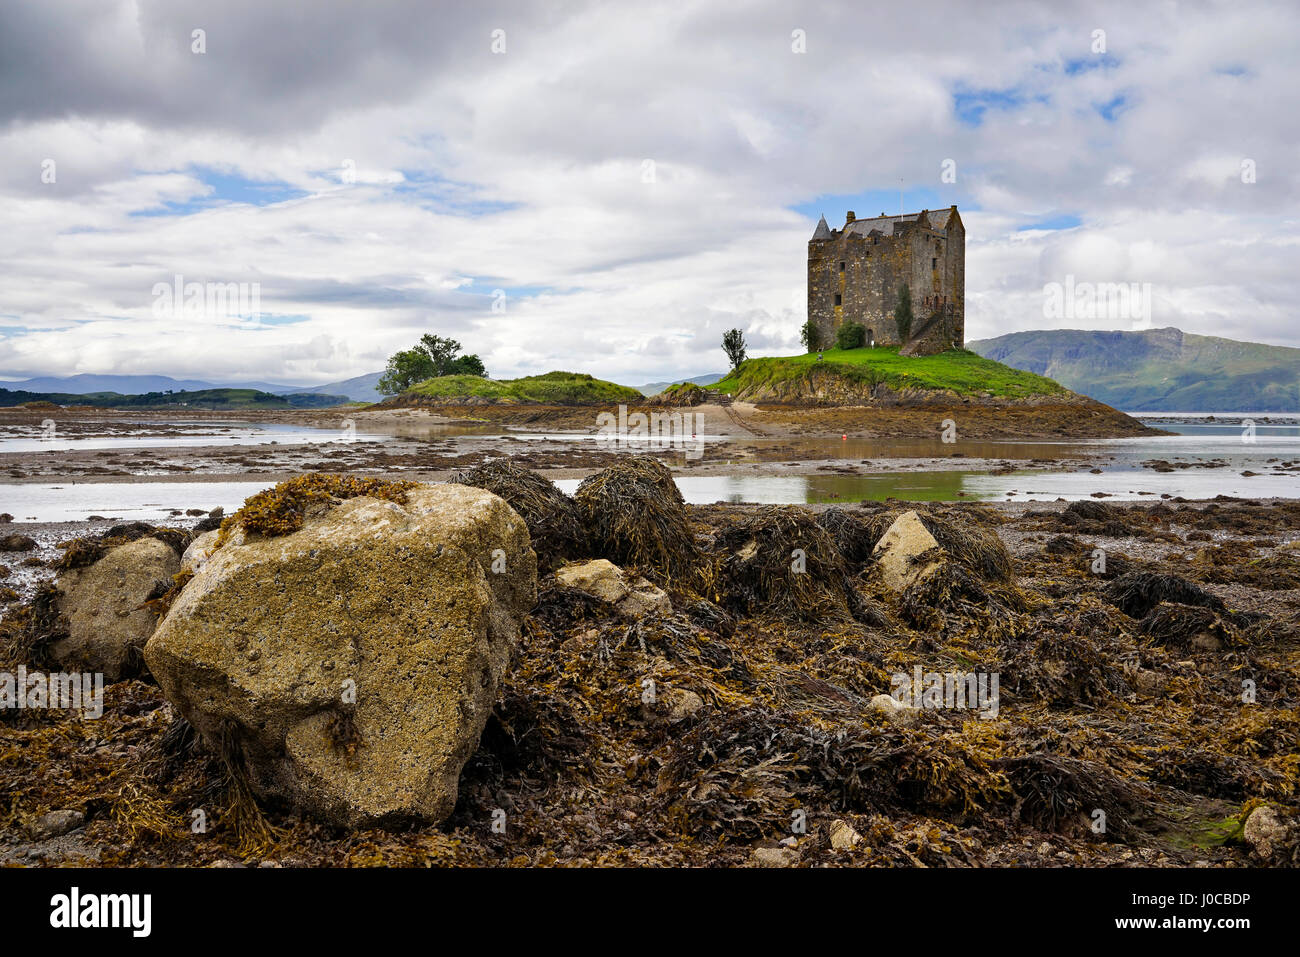 Castle Stalker (Castle Aaargh from Monty Python and the Holy Grail), near Port Appin, Argyll, Scottish west coast, - Stock Image